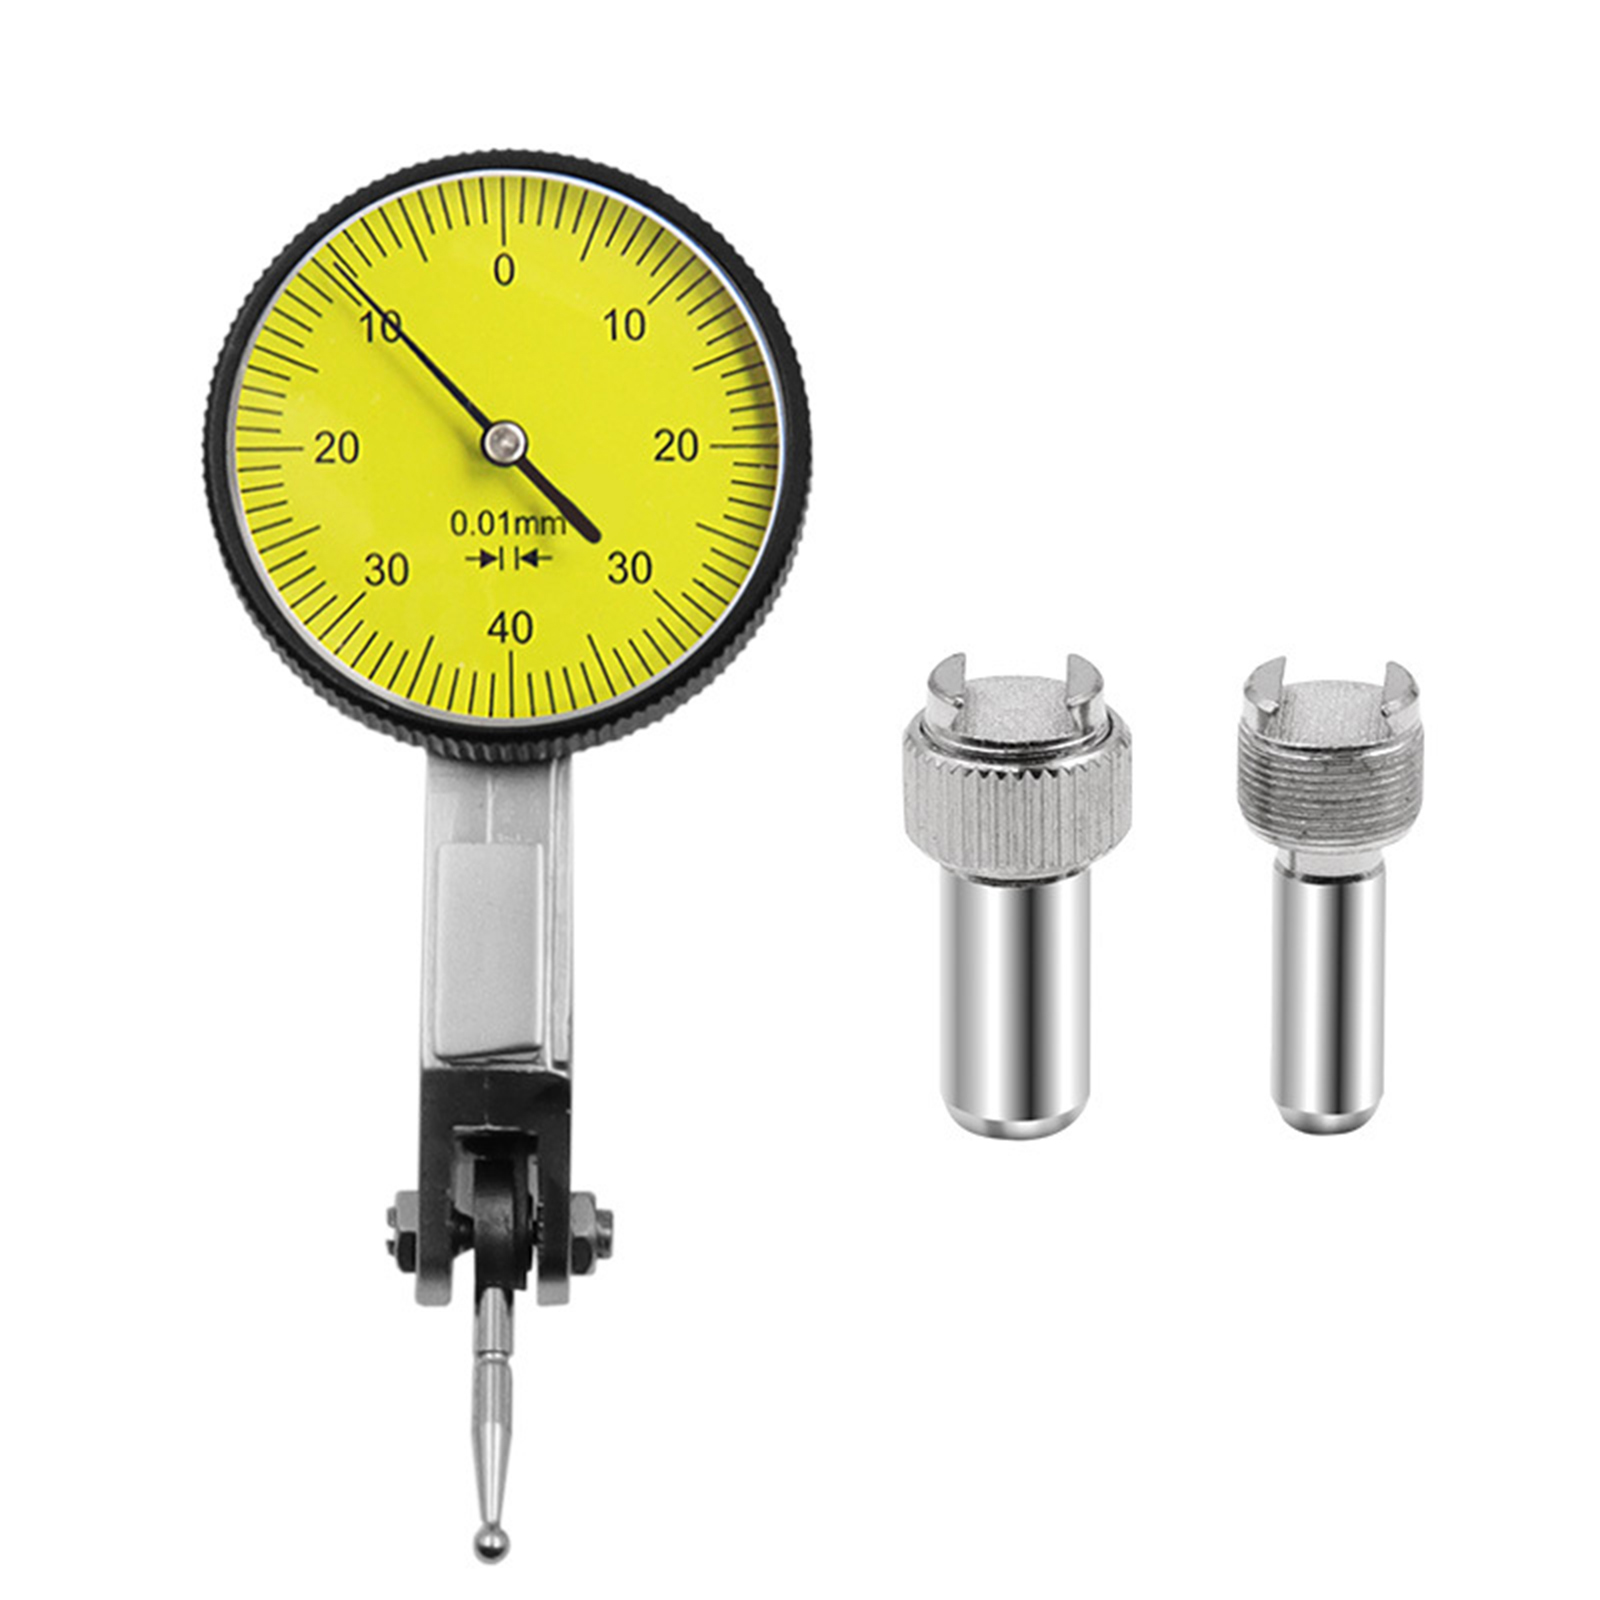 Accurate Dial Gauge Test Indicator Precision Metric with Dovetail Rails Mount 0-4 0.01mm Measuring Instrument Tool New